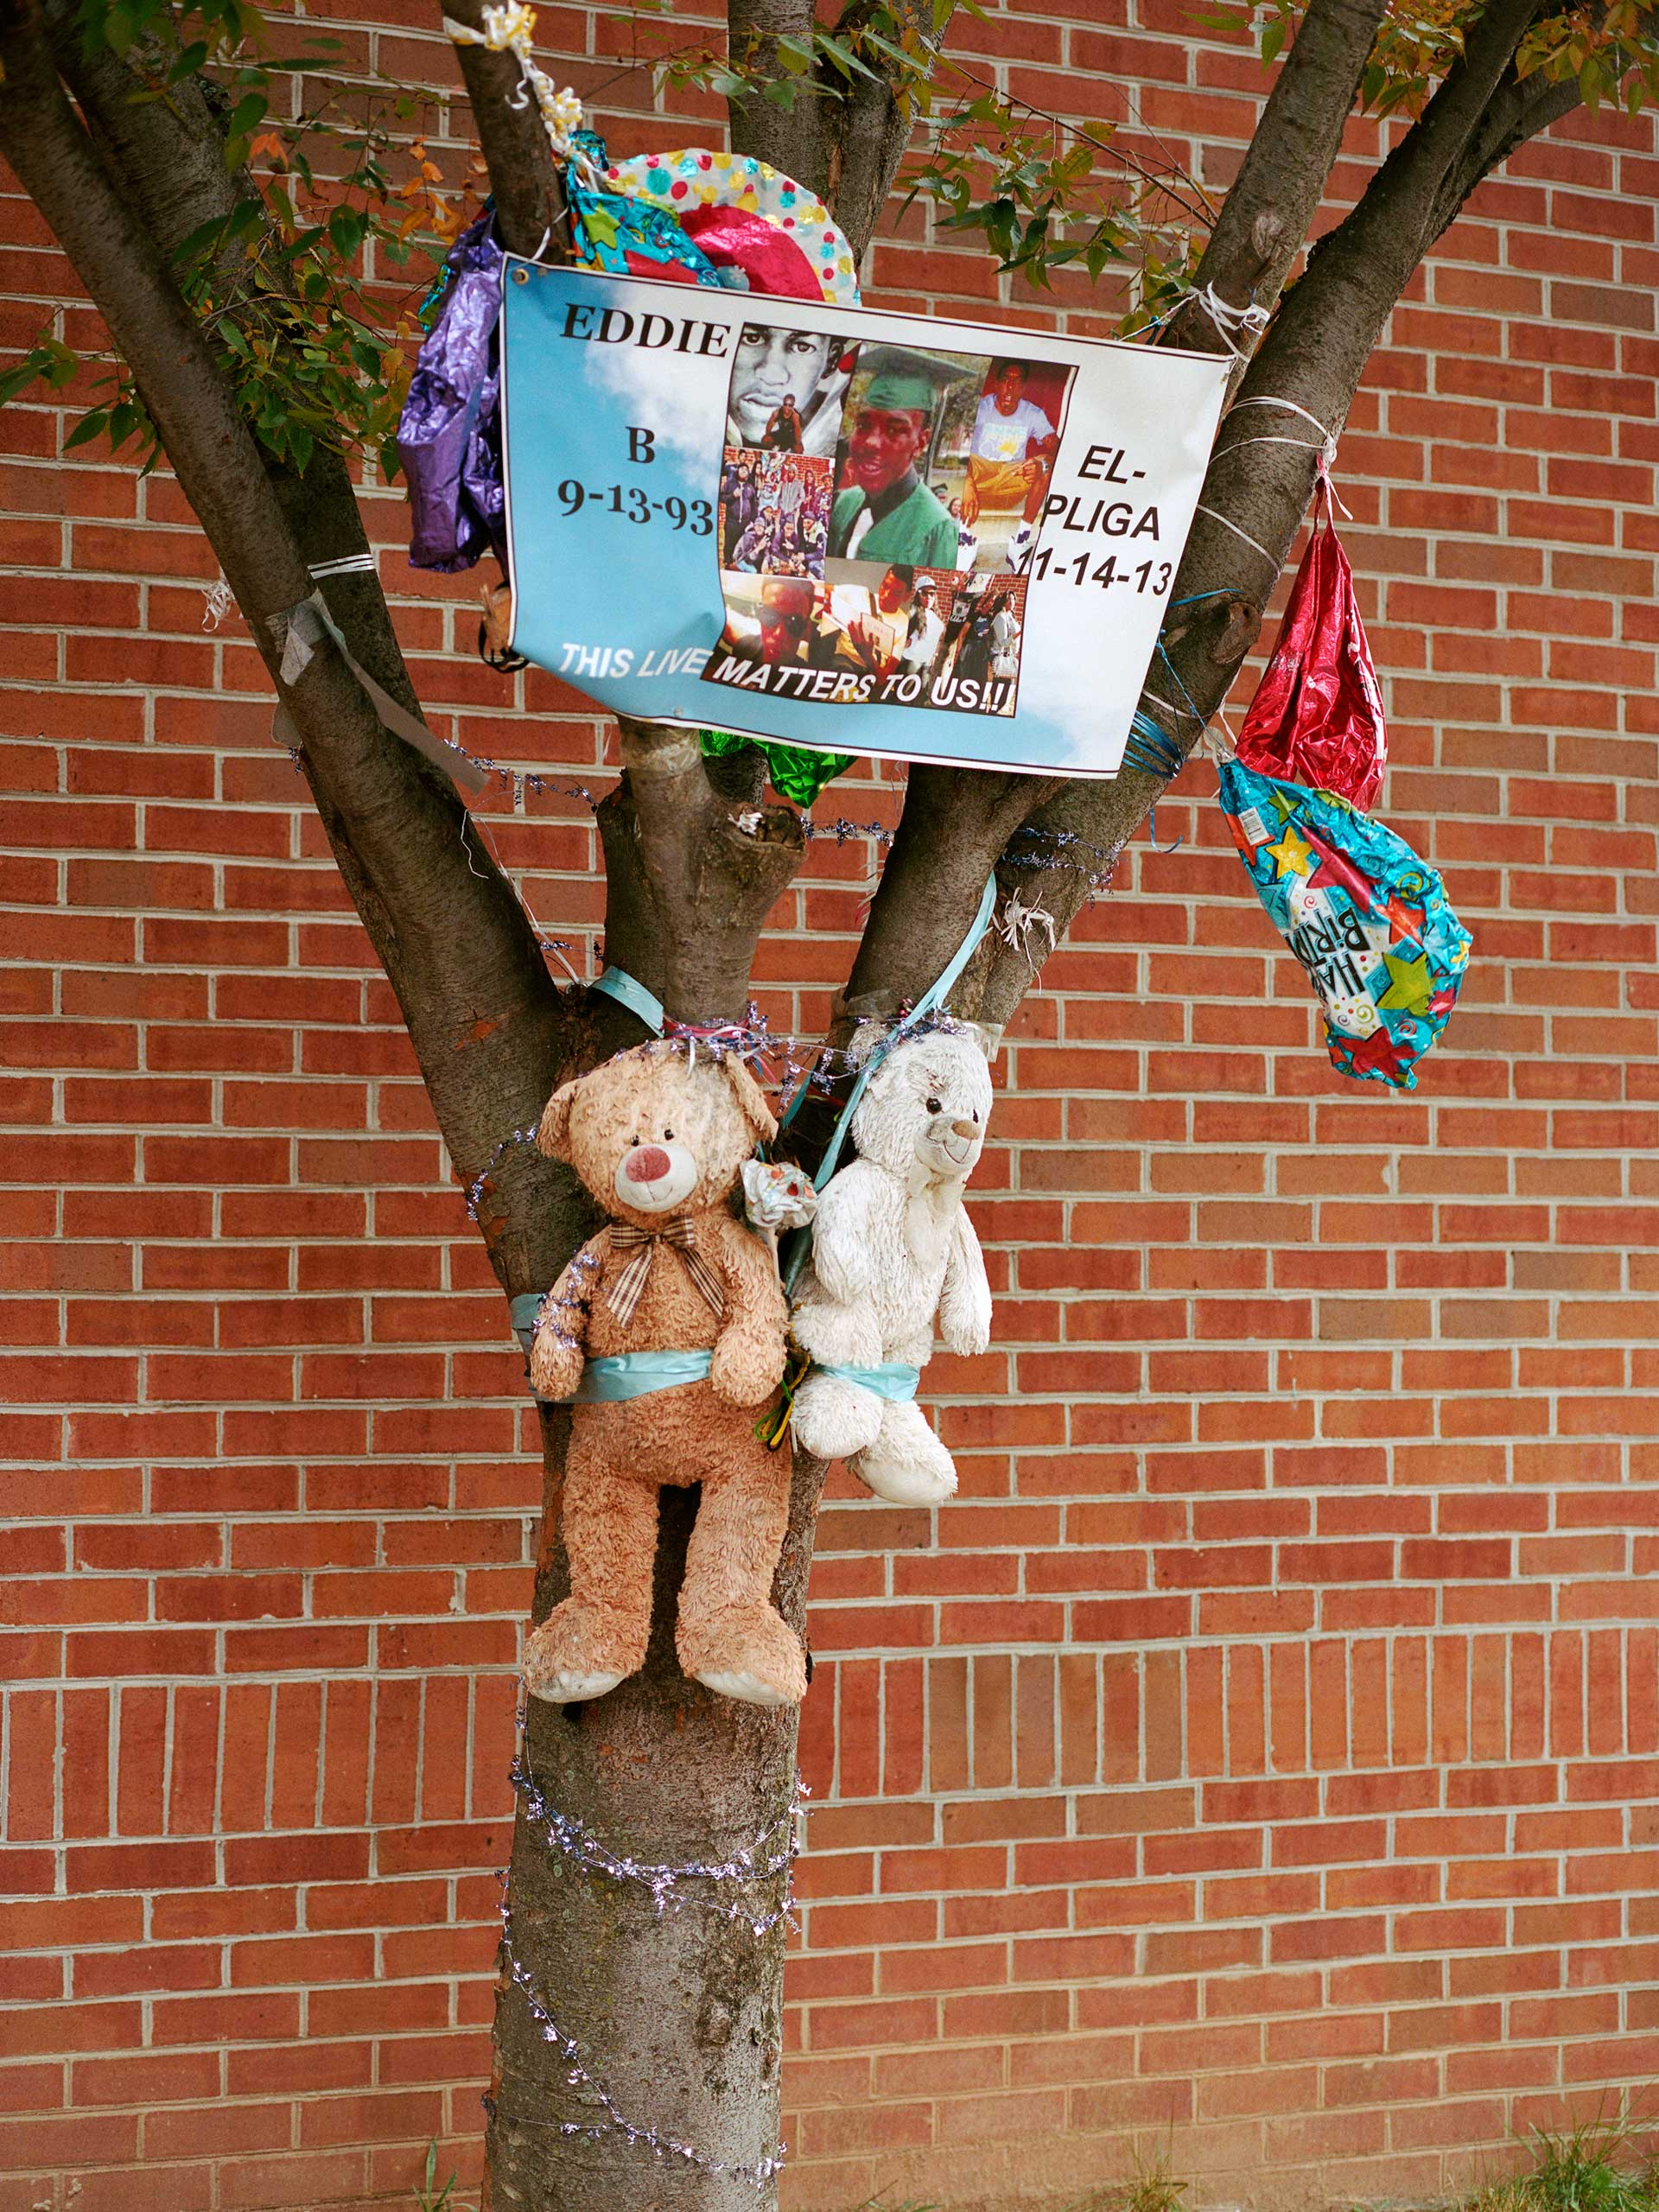 Birthday balloons and teddy bears adorn a memorial for Eddie Elpliga who was shot and killed in Sandtown in 2013. He was 19 when he died.